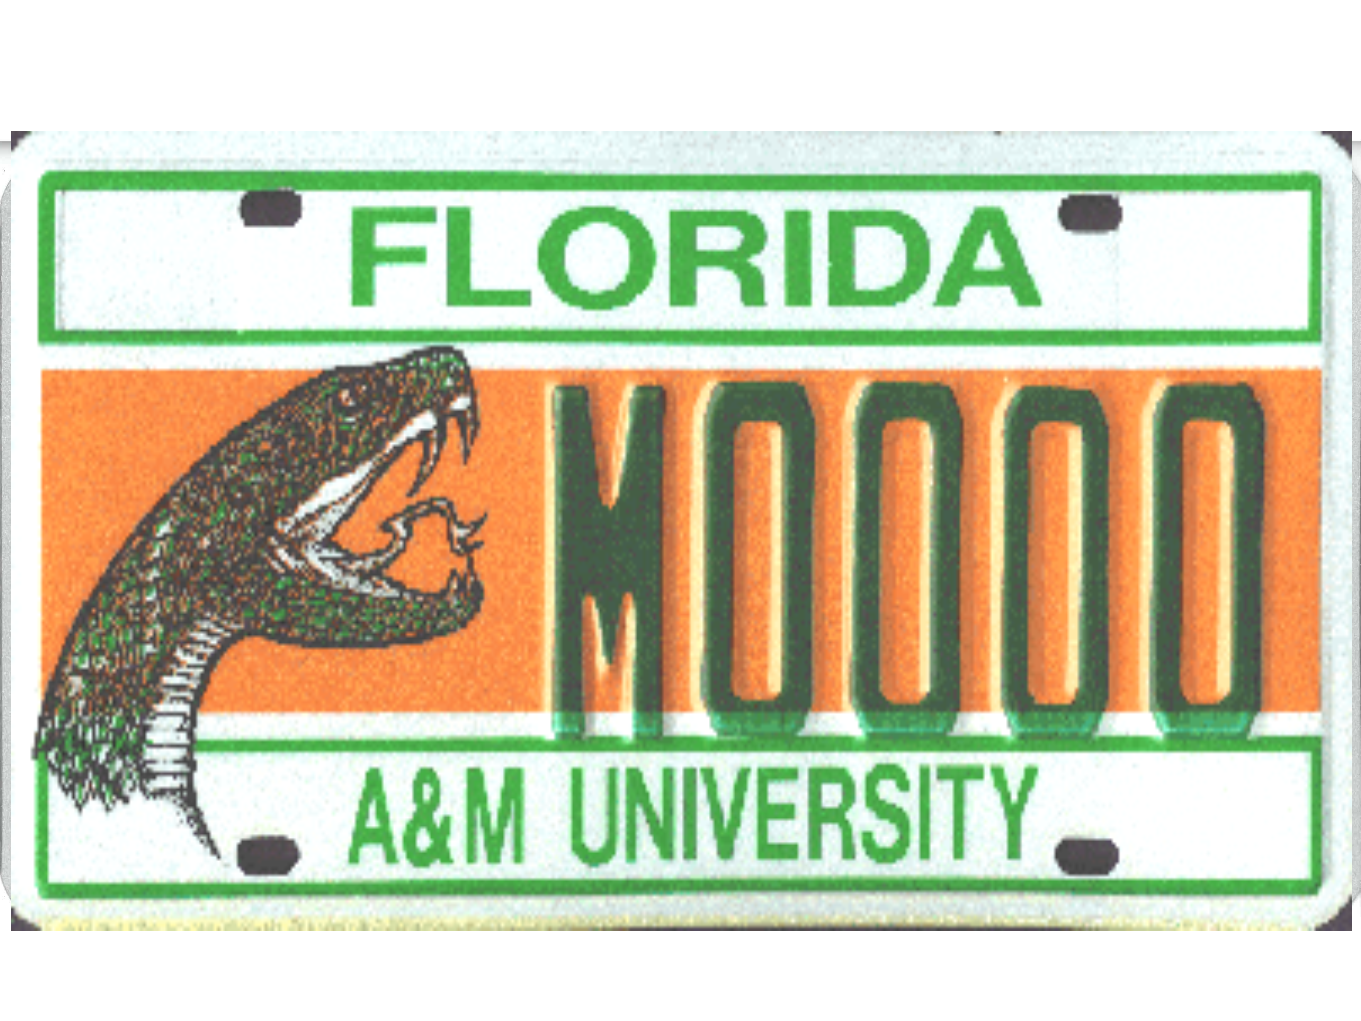 The Florida A&M University license plate.